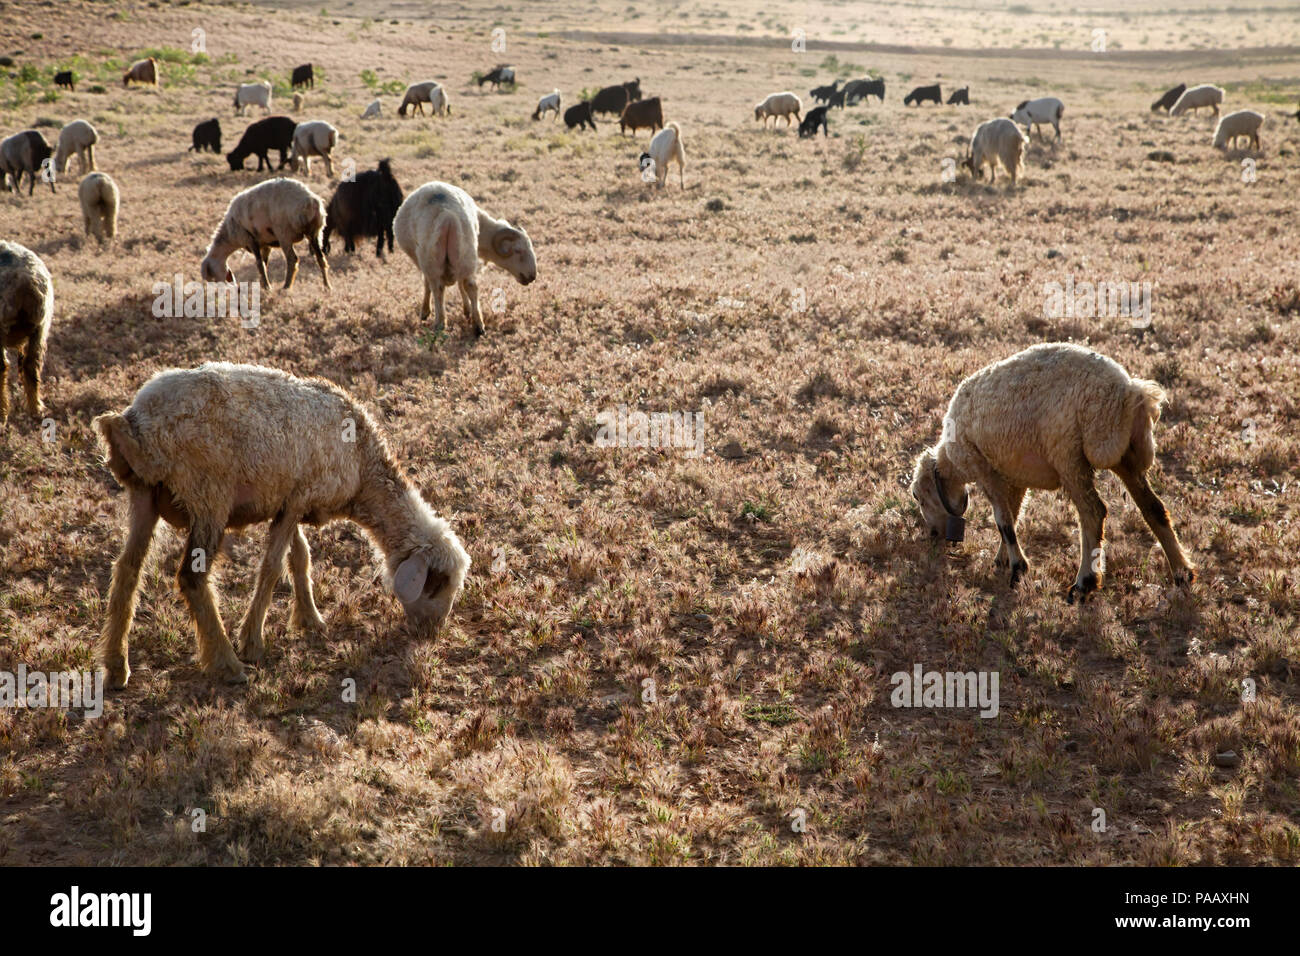 Sheeps near Qashqai nomad people camp , Iran - Stock Image